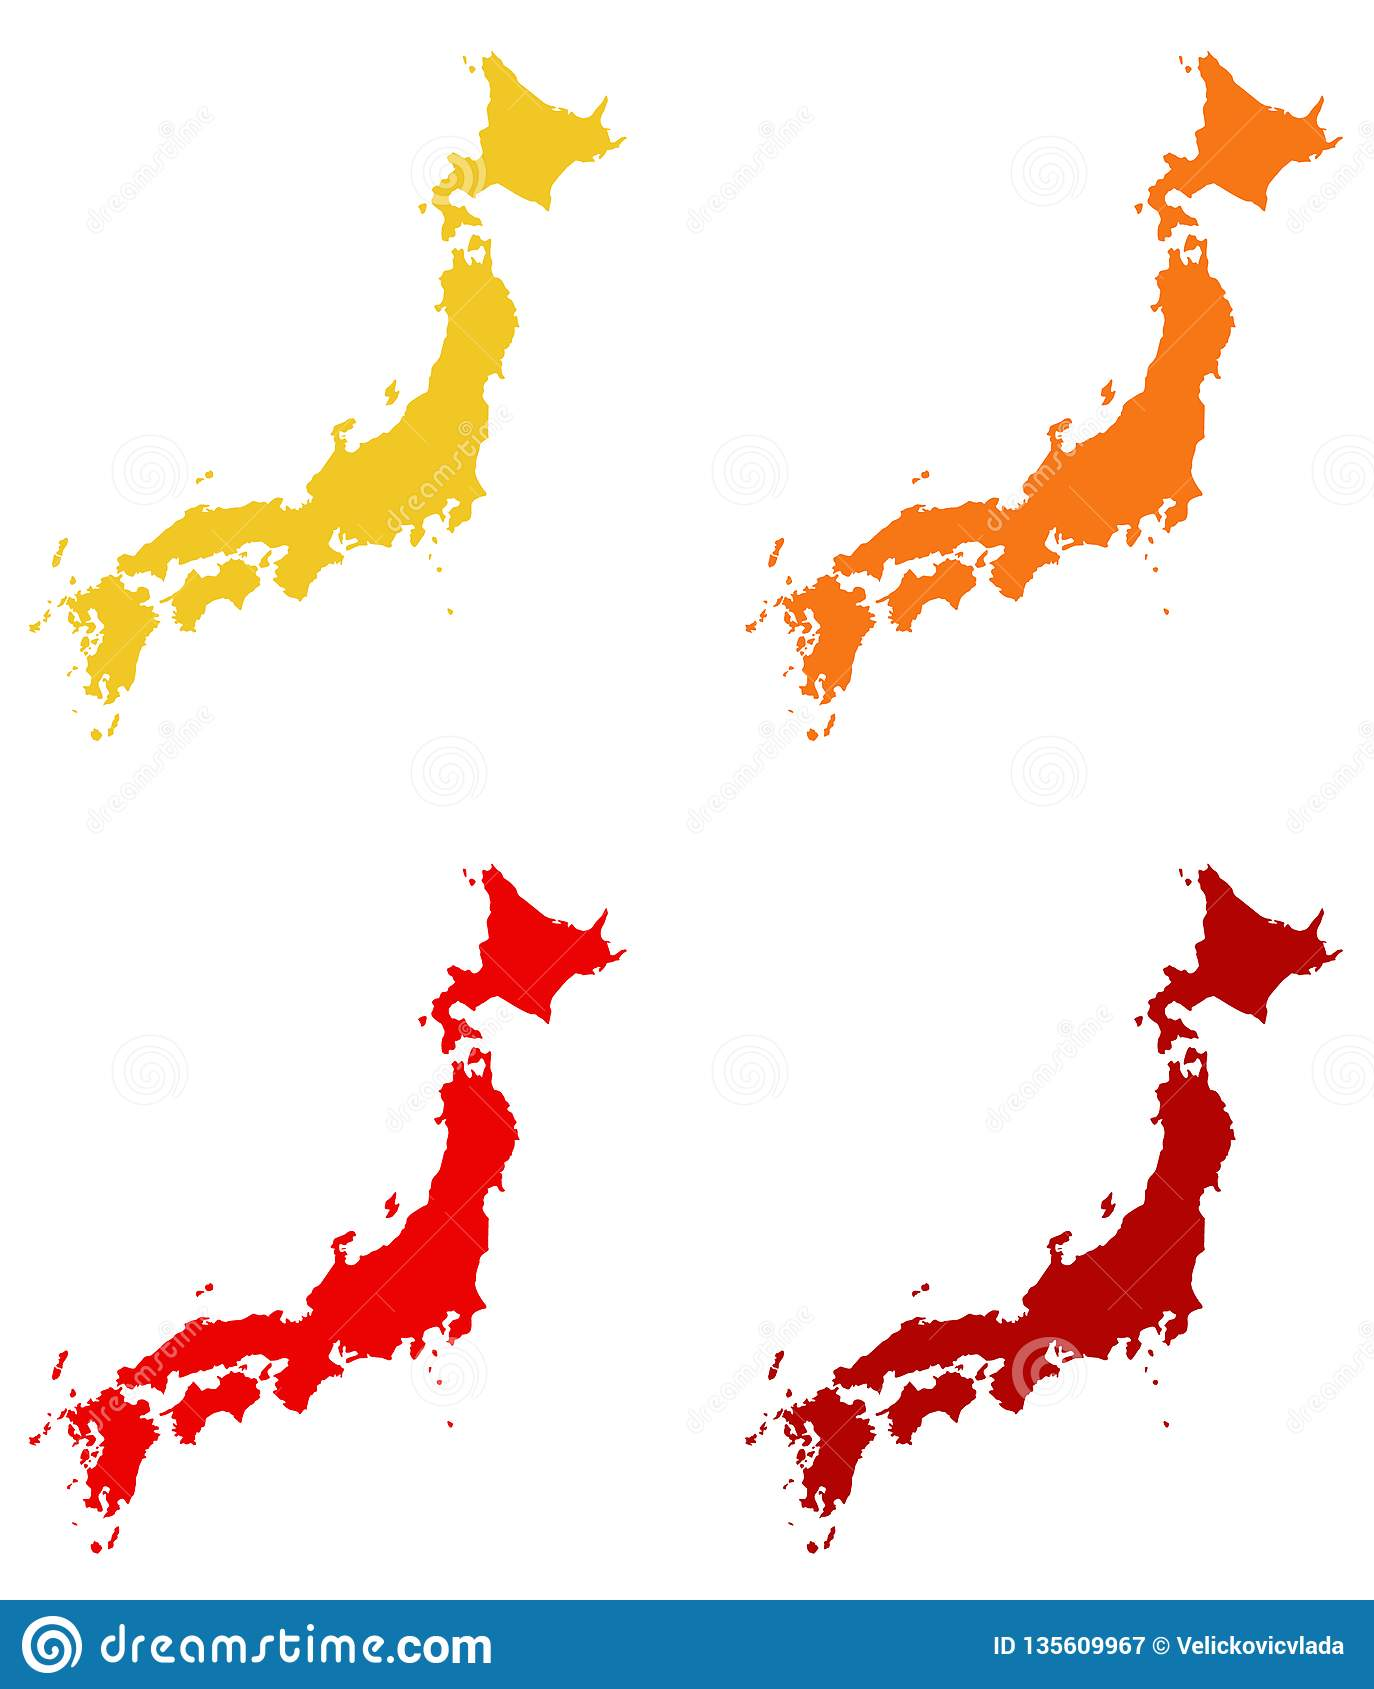 Japan Map - Island Country In East Asia Stock Vector - Illustration ...